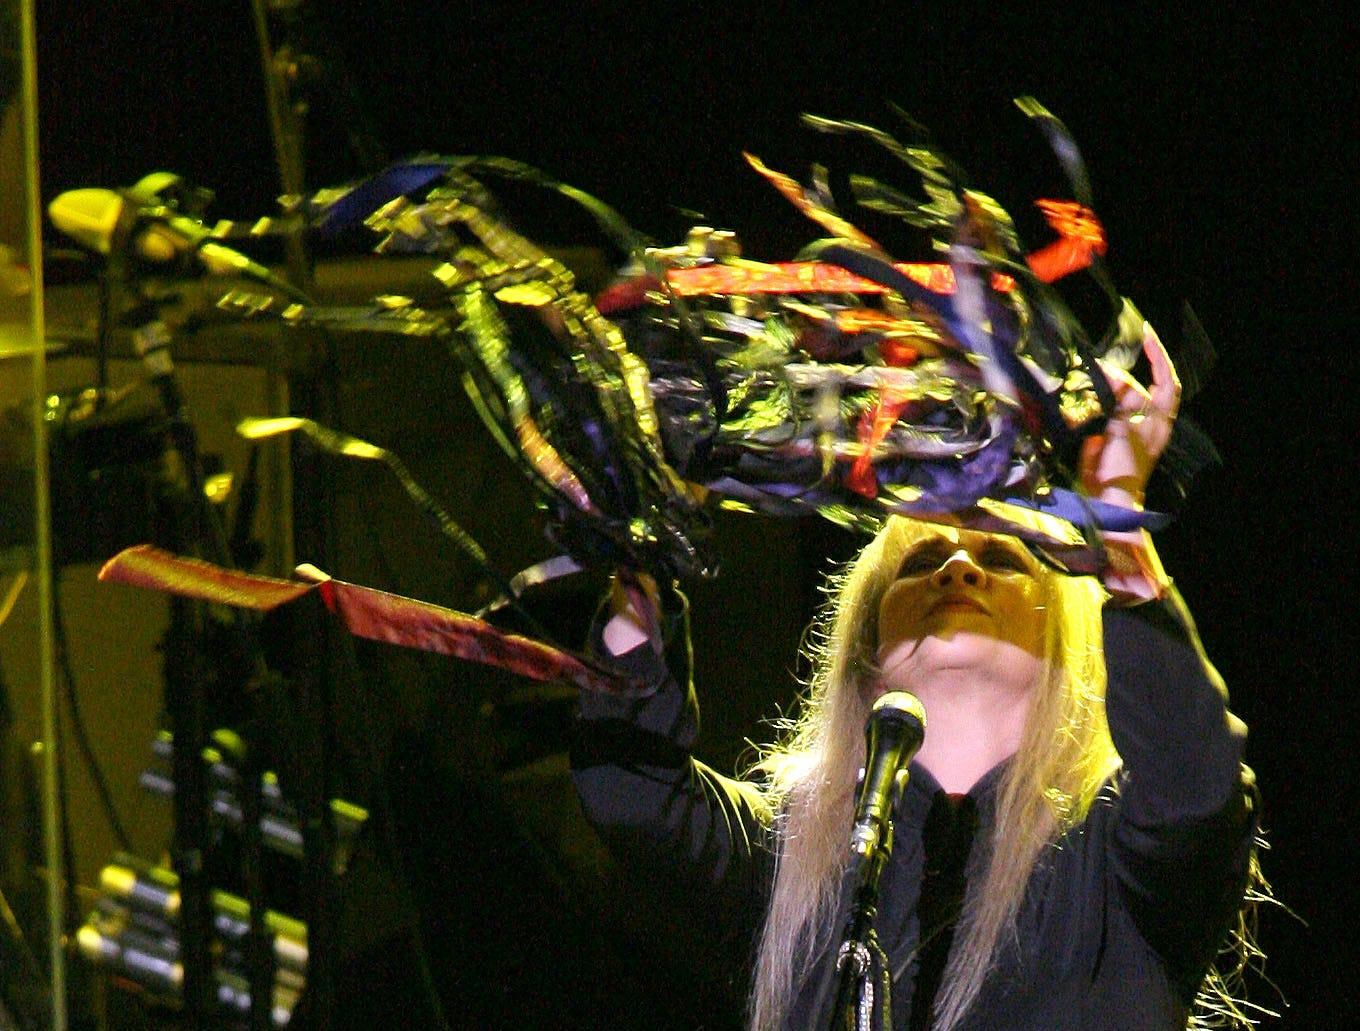 Stevie Nicks performs at the Dodge Theater in Phoenix in 2007.